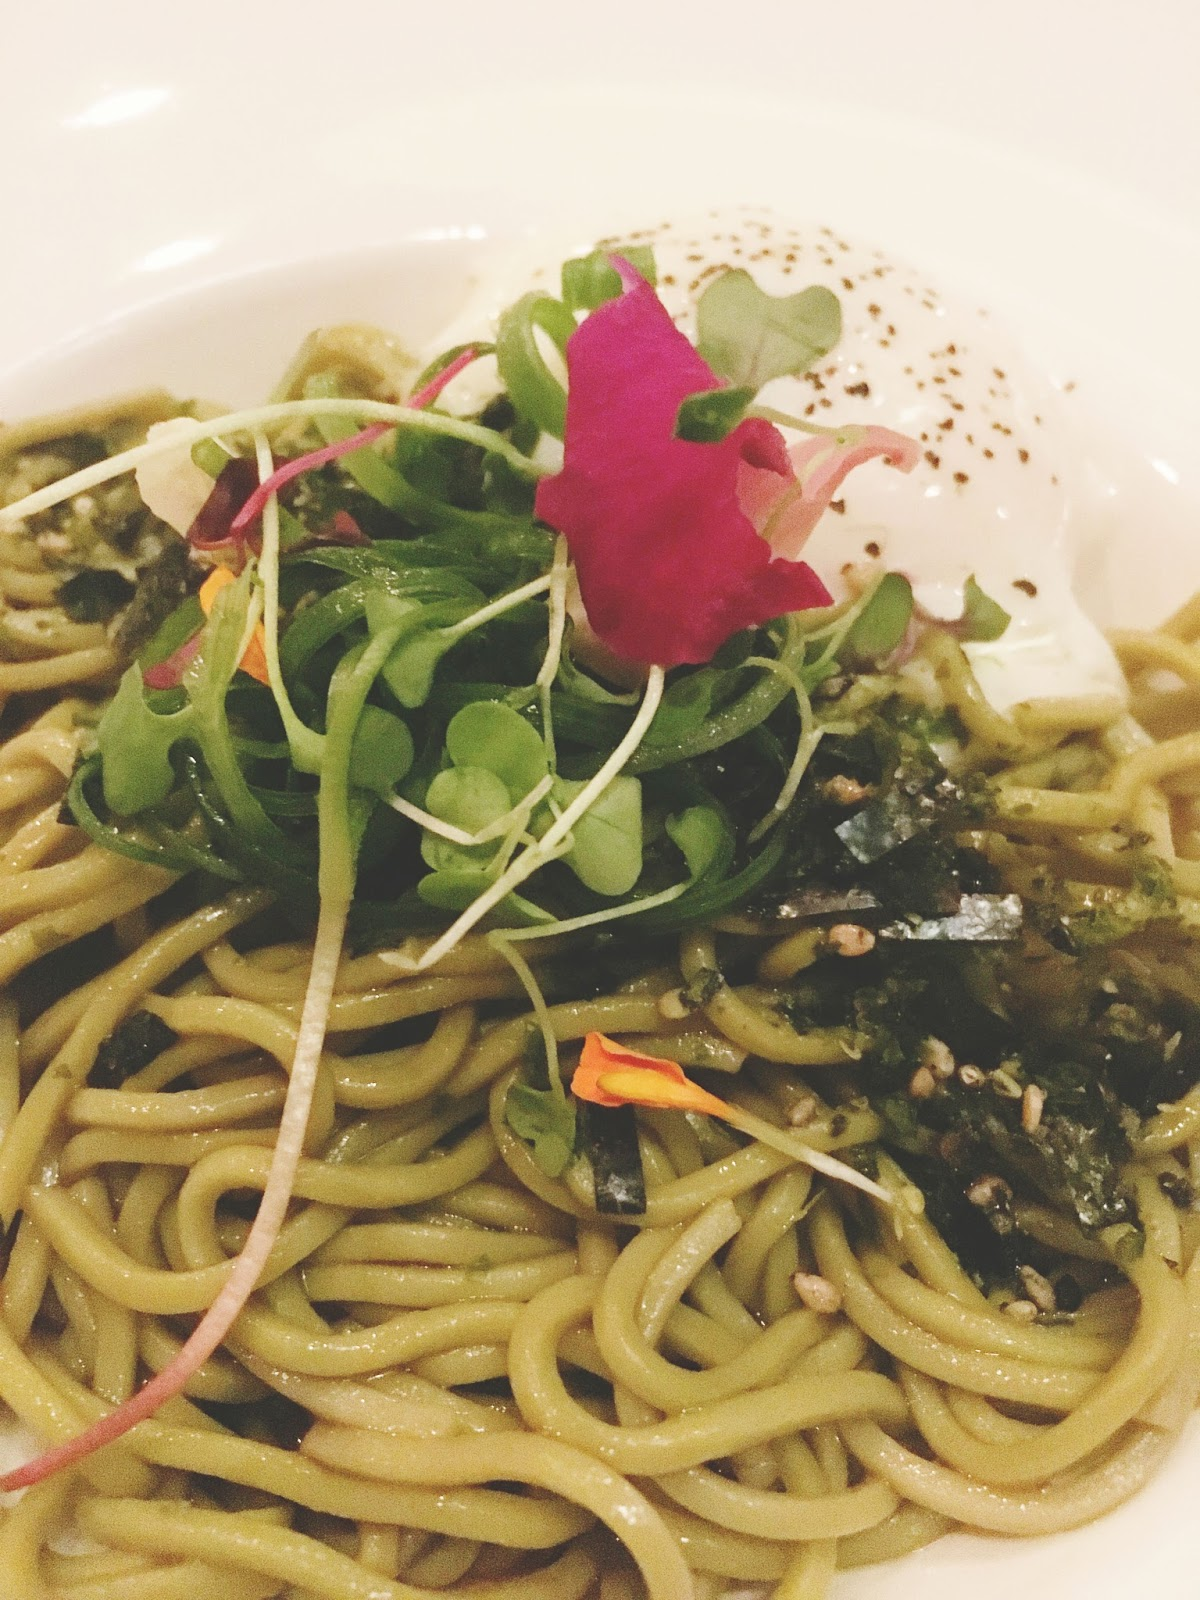 green tea soba noodles at ka sushi, a restaurant in Houston, Texas